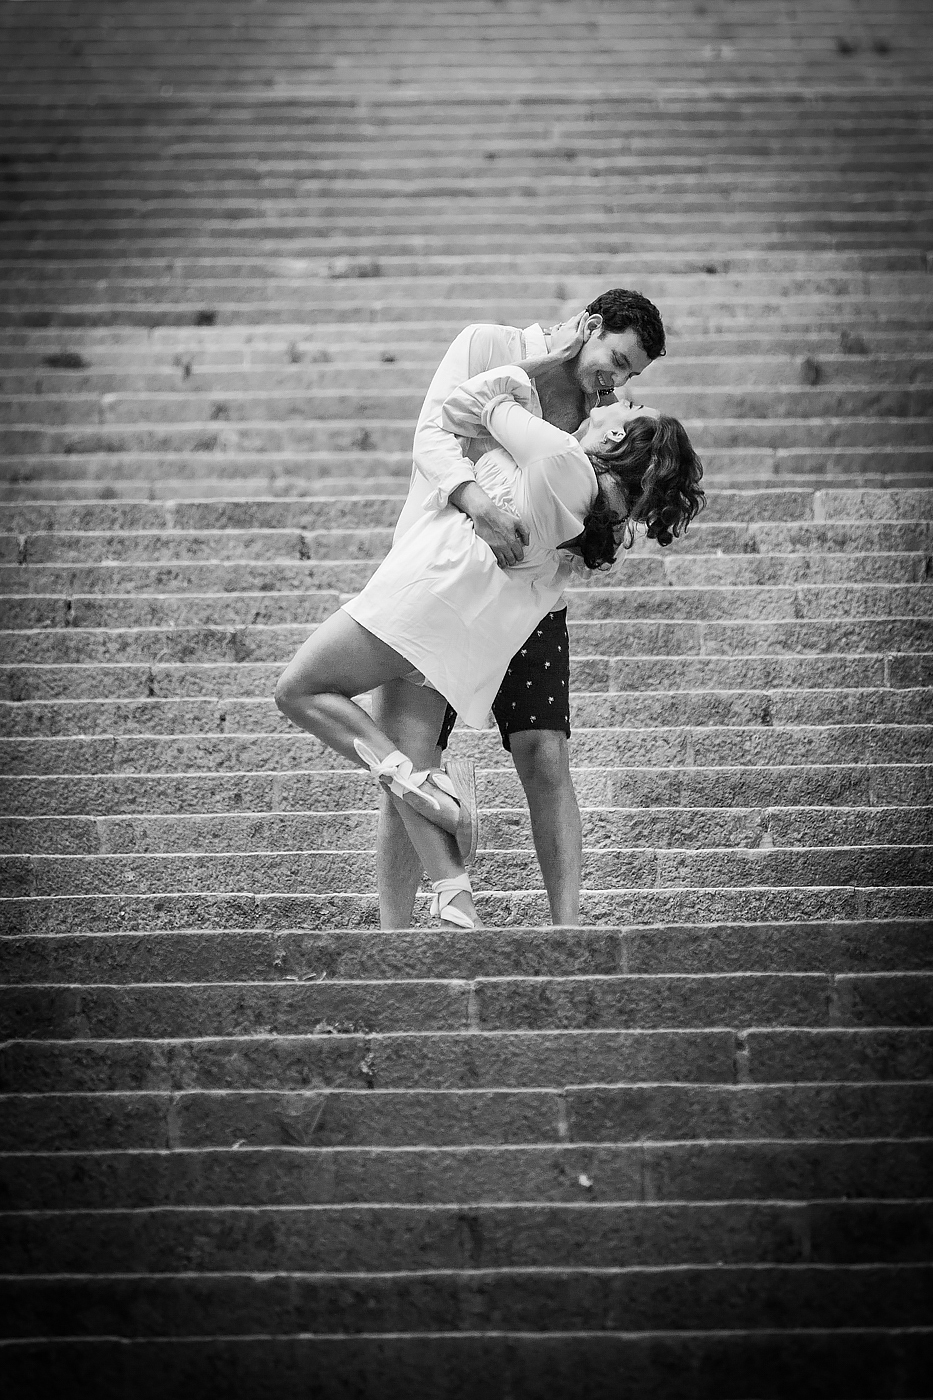 Stairs kiss